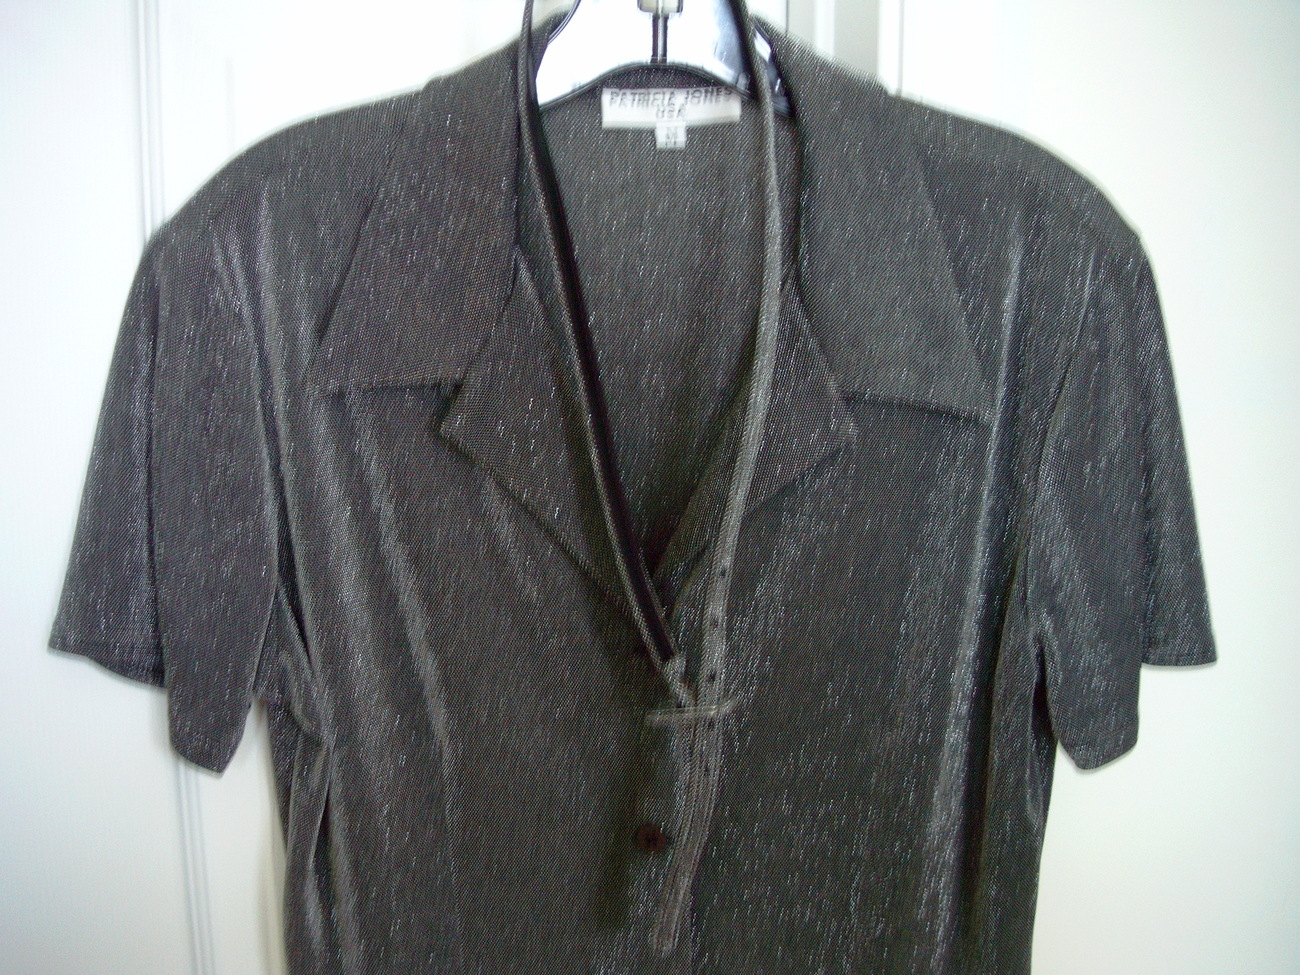 PATRICIA JONES USA METALLIC FORMAL DRESS SHIRT WITH BELT SIZE M